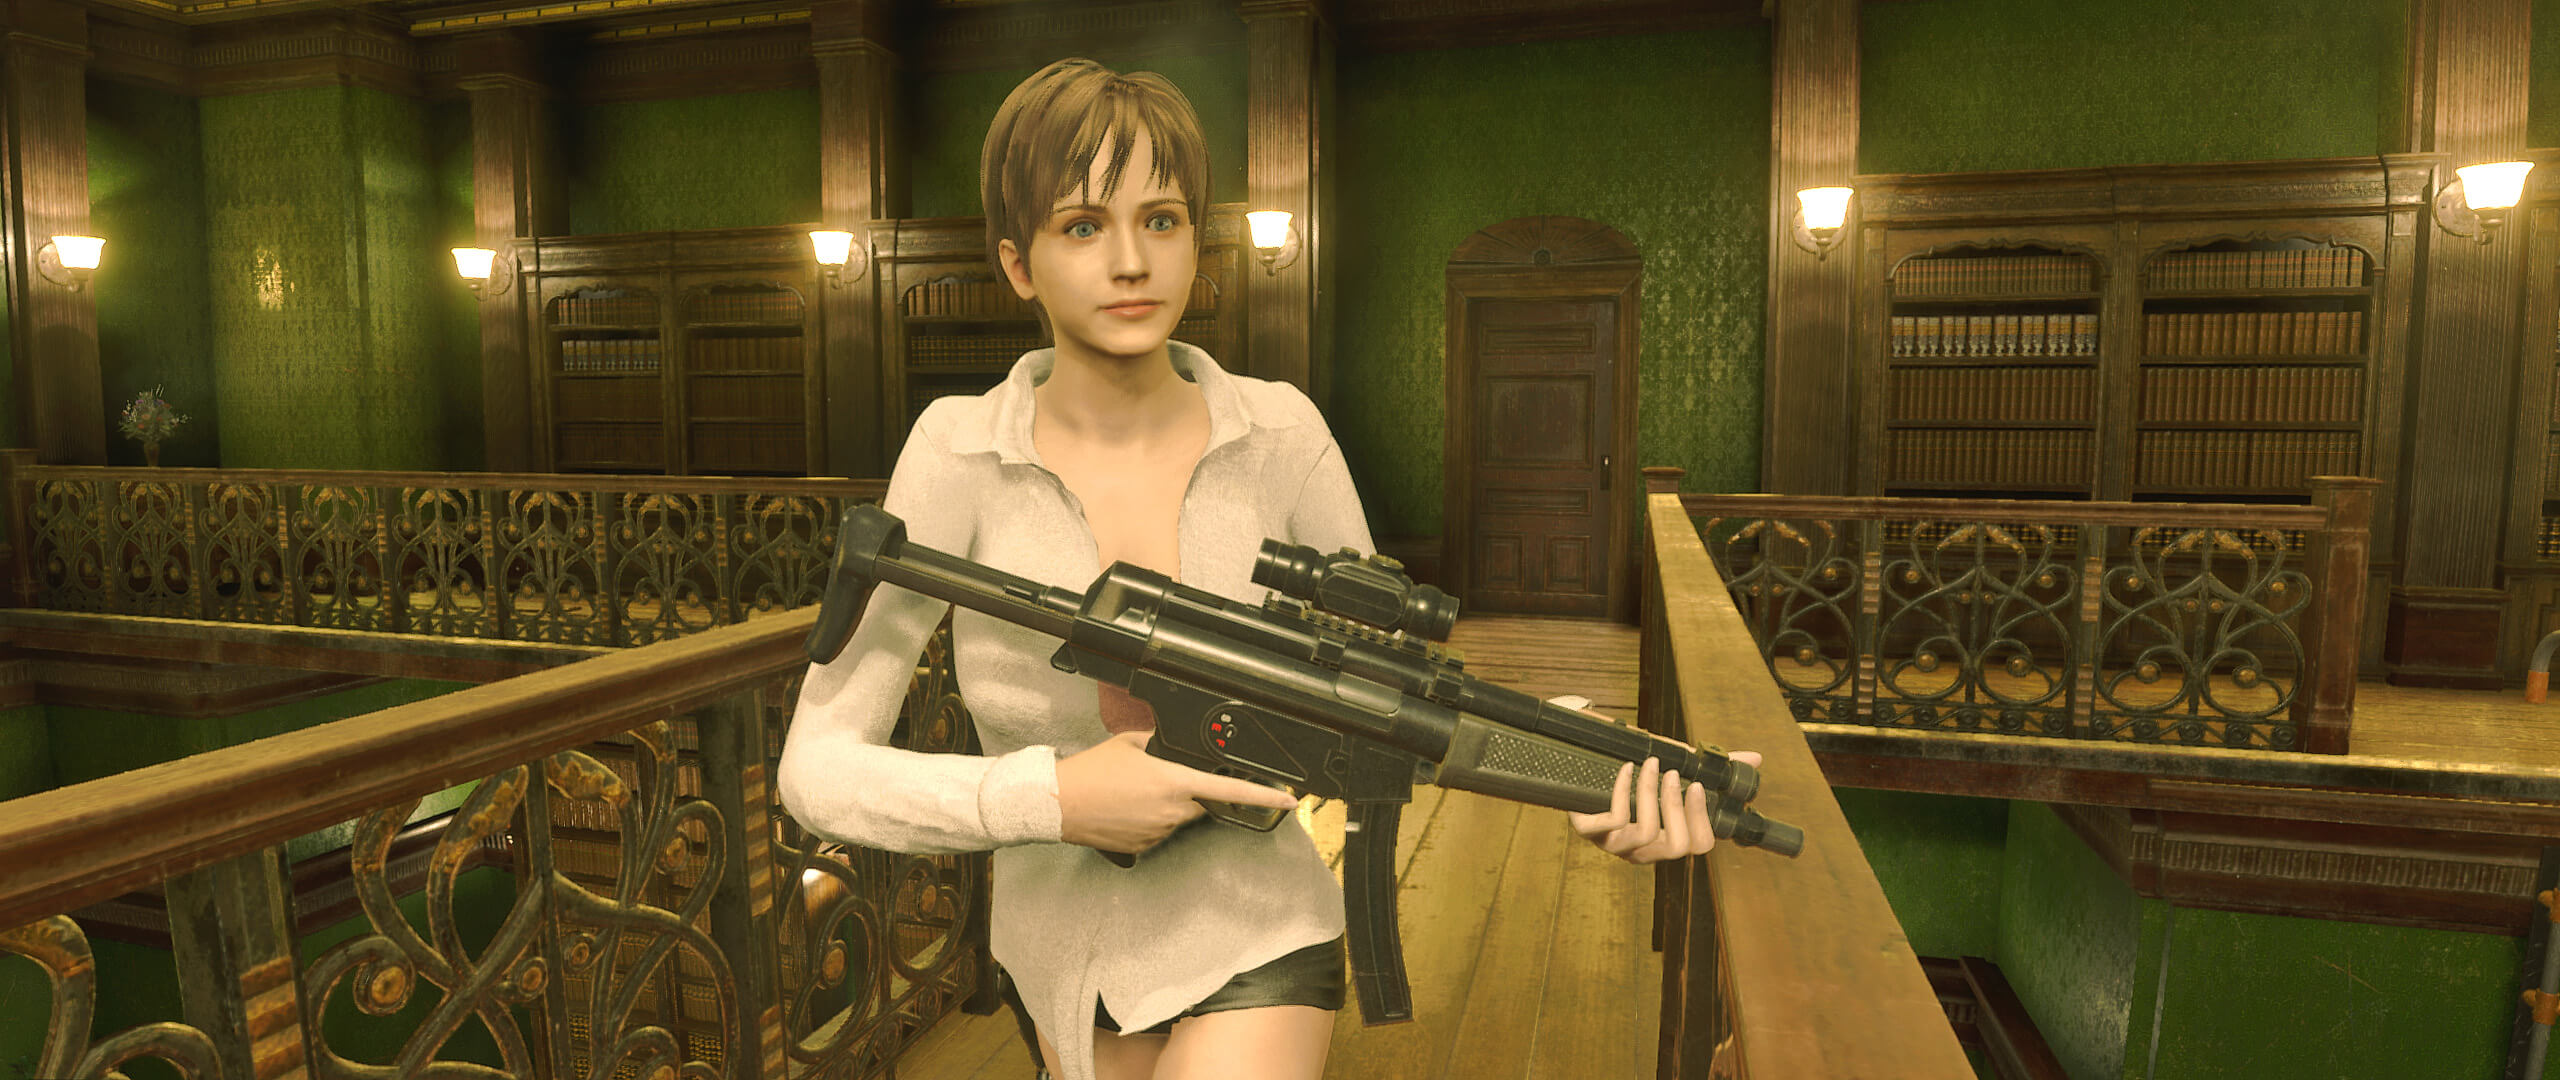 Rebecca Chambers is now playable in Resident Evil 2 Remake thanks to